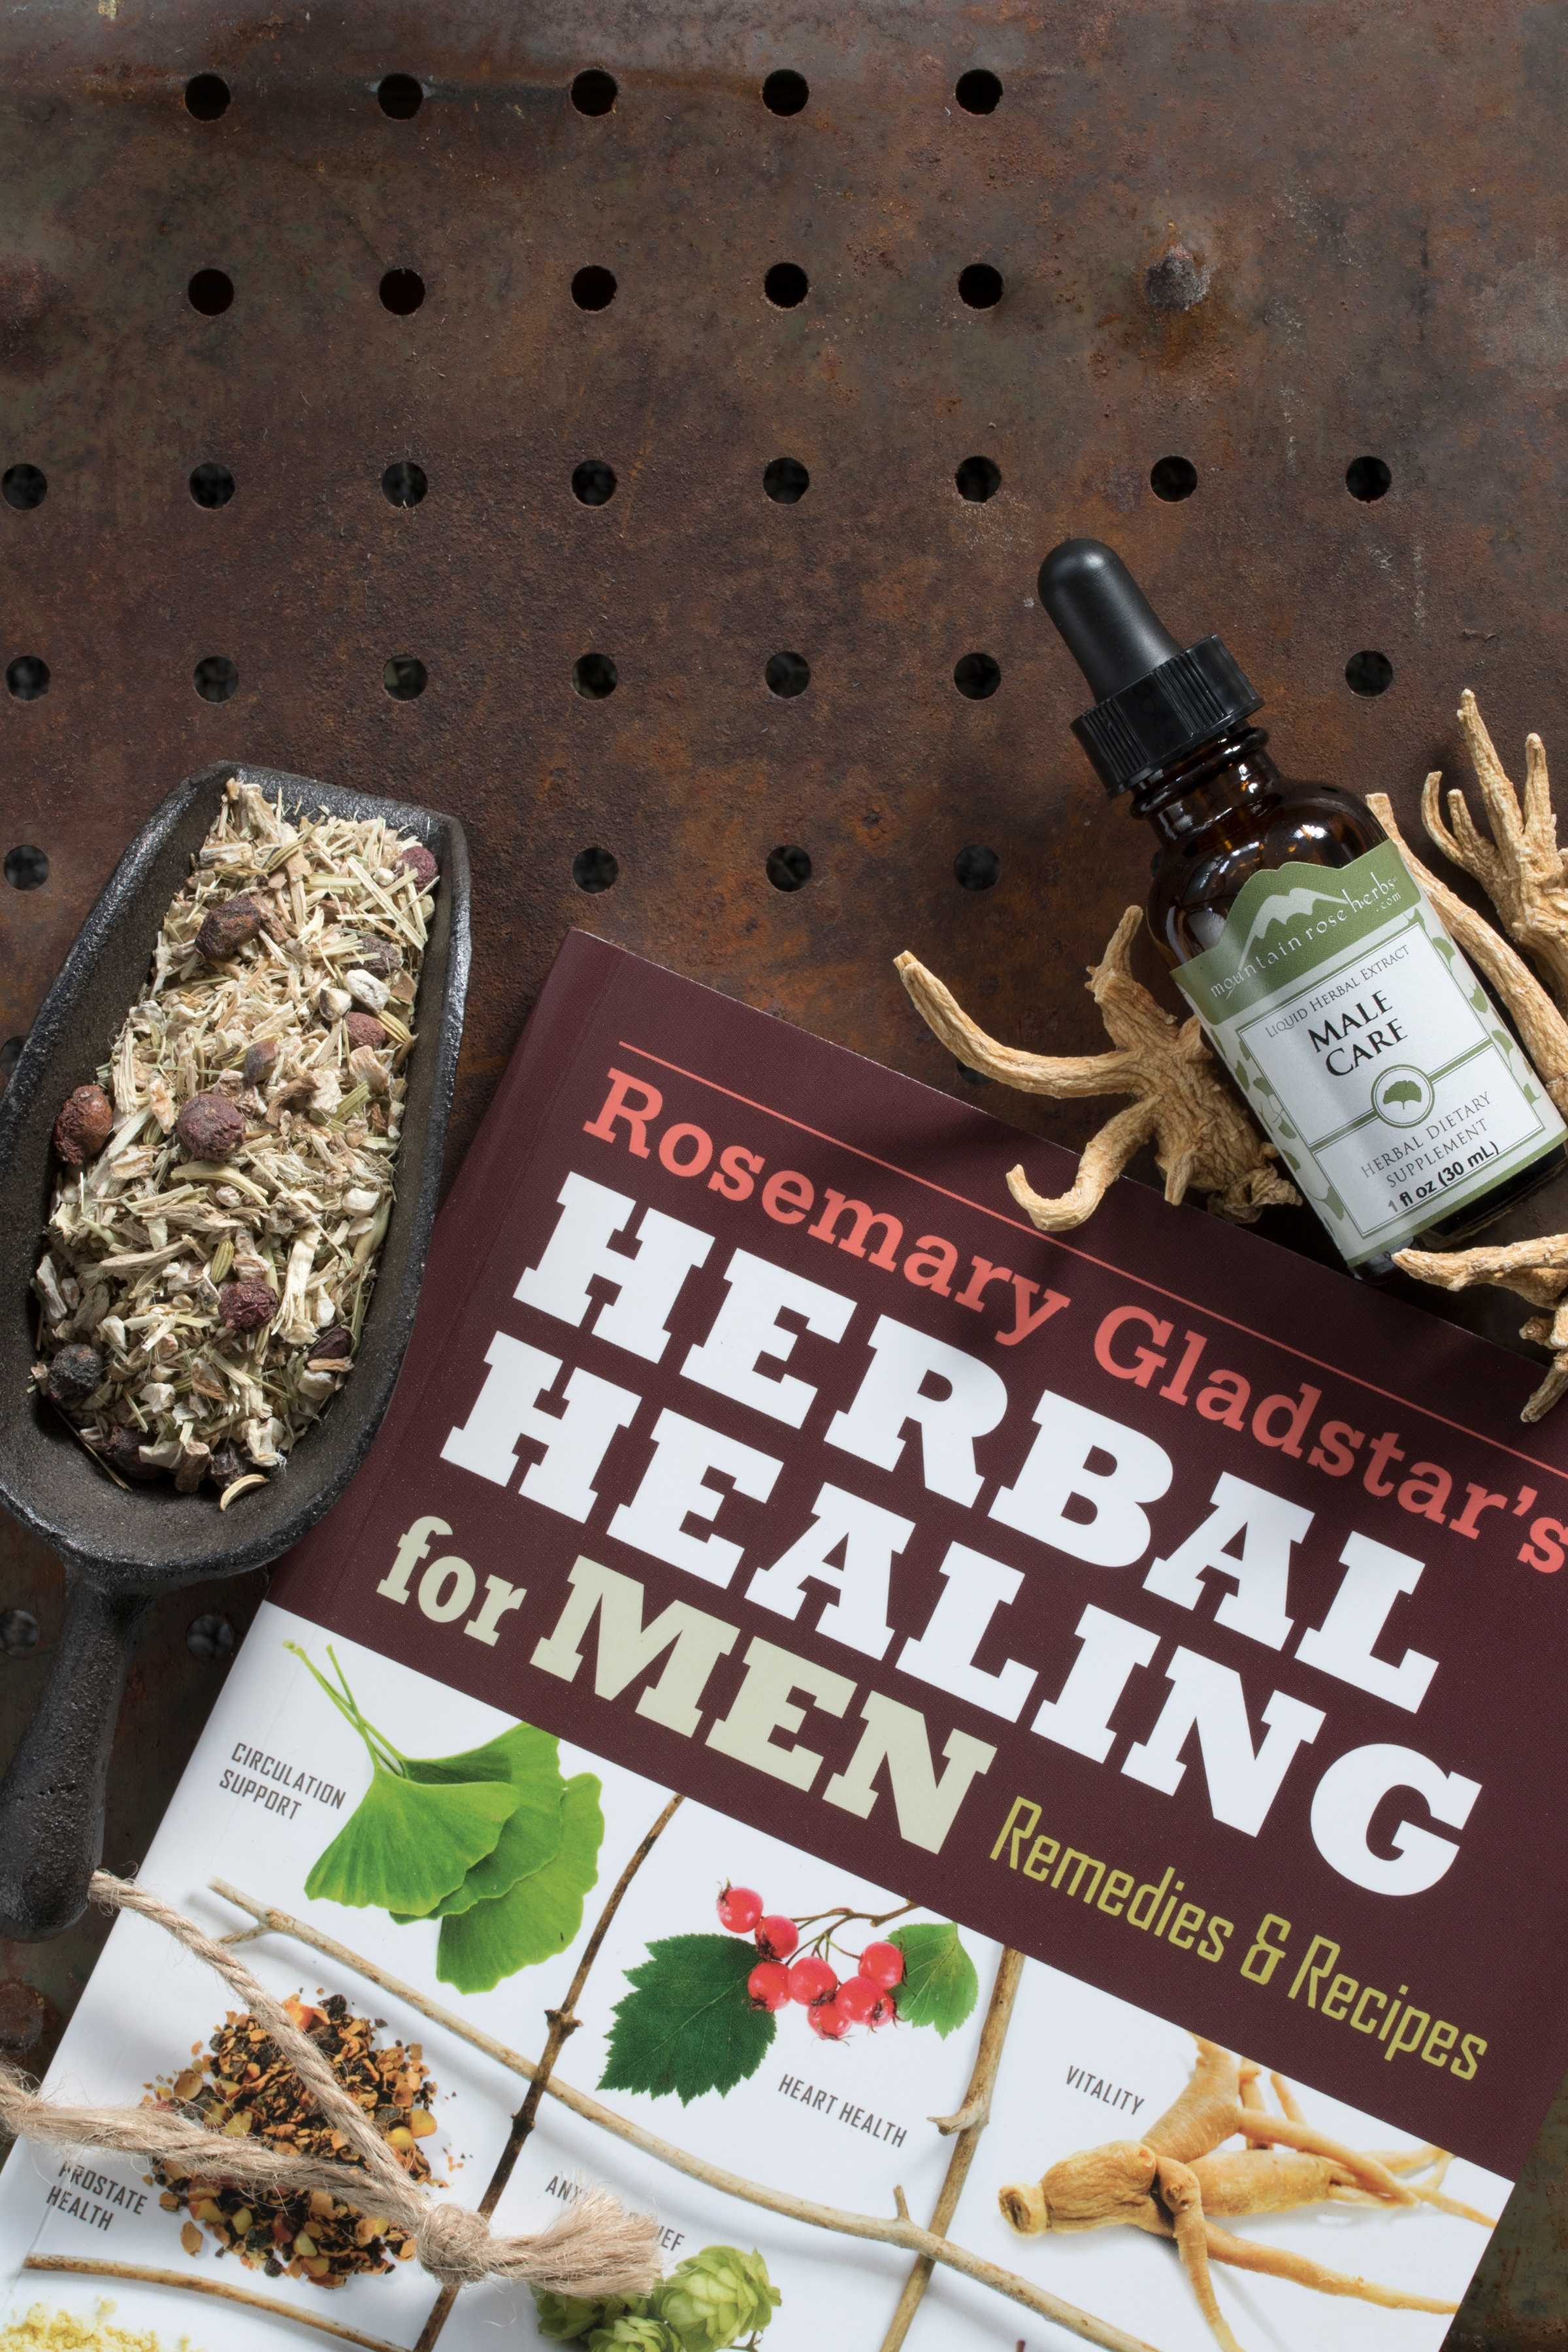 Overhead of Herbal Healing for Men book by Rosemary Gladstar laying next to herbs and tea